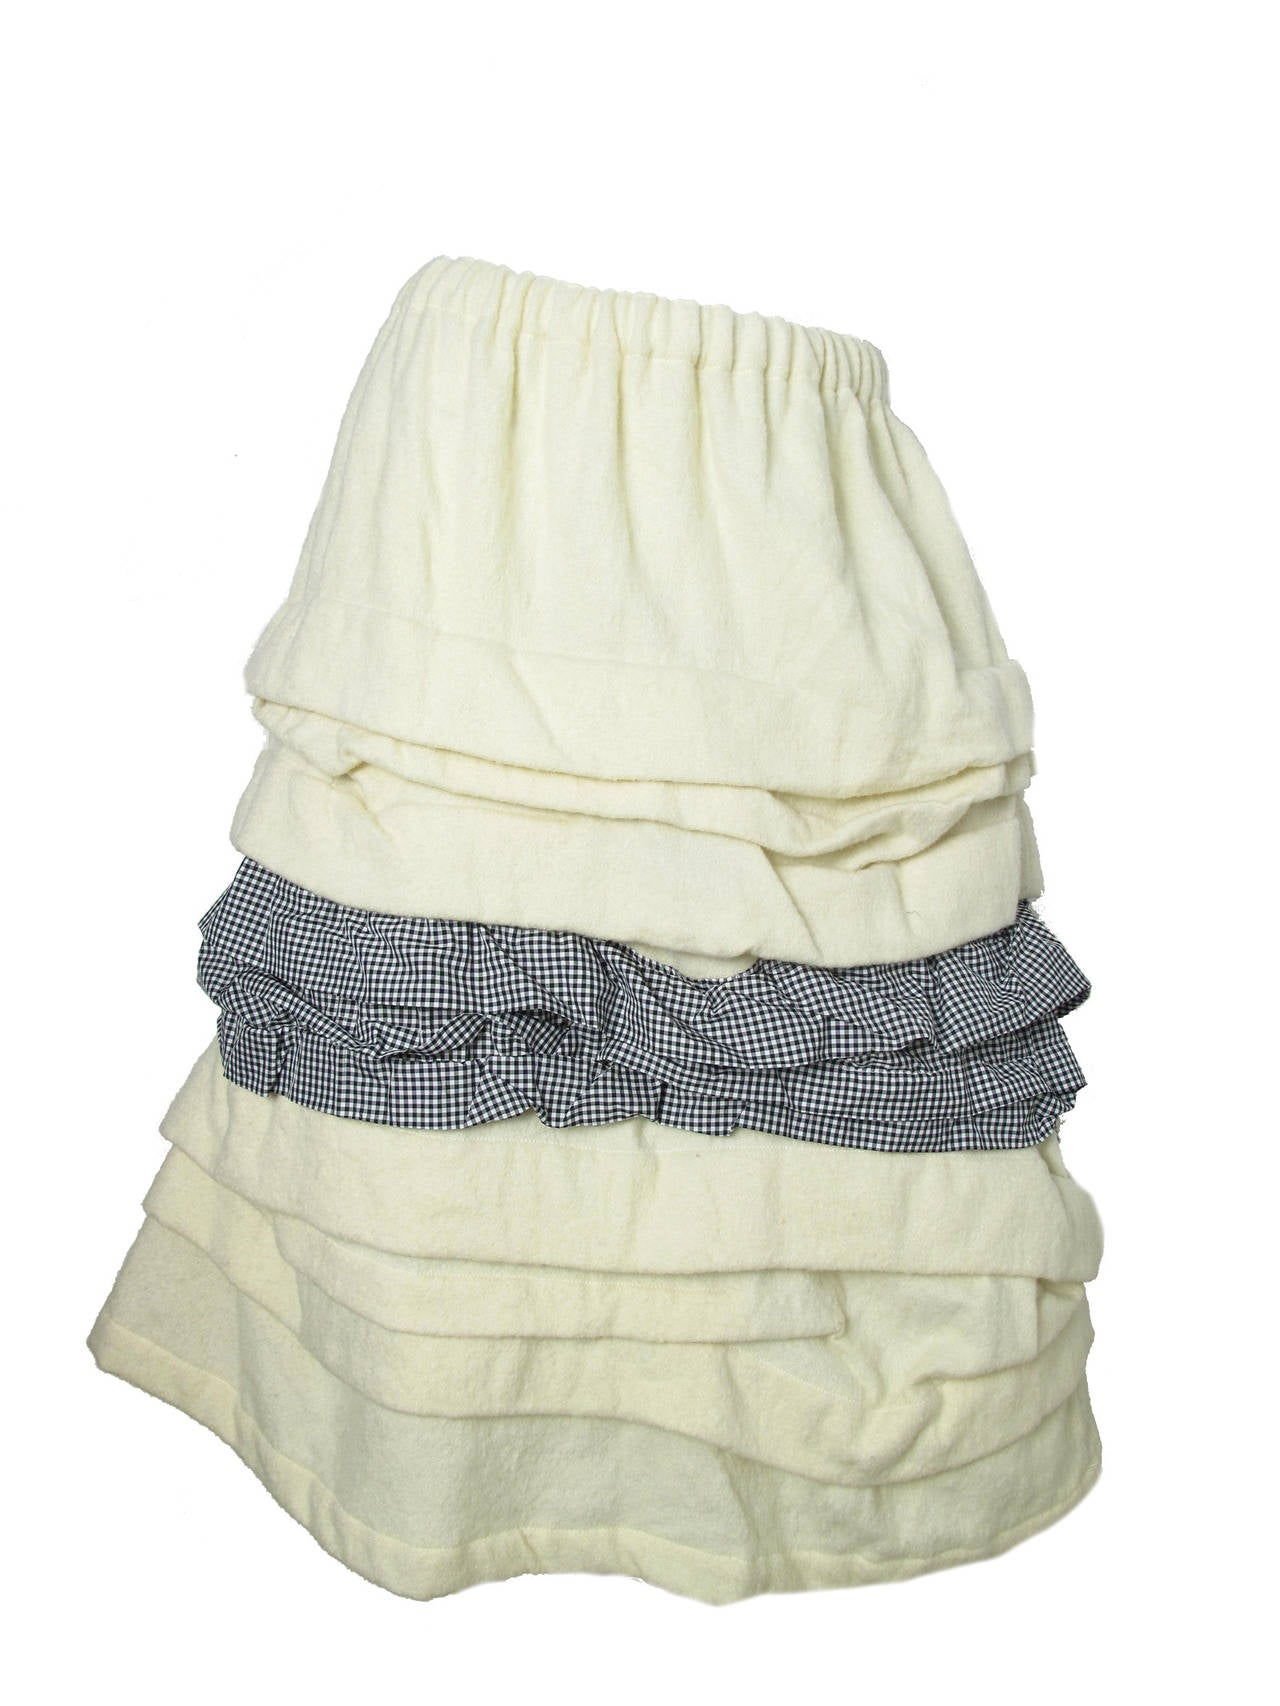 Comme des Garcons Ruffle Skirt with Gingham  In Excellent Condition For Sale In Austin, TX